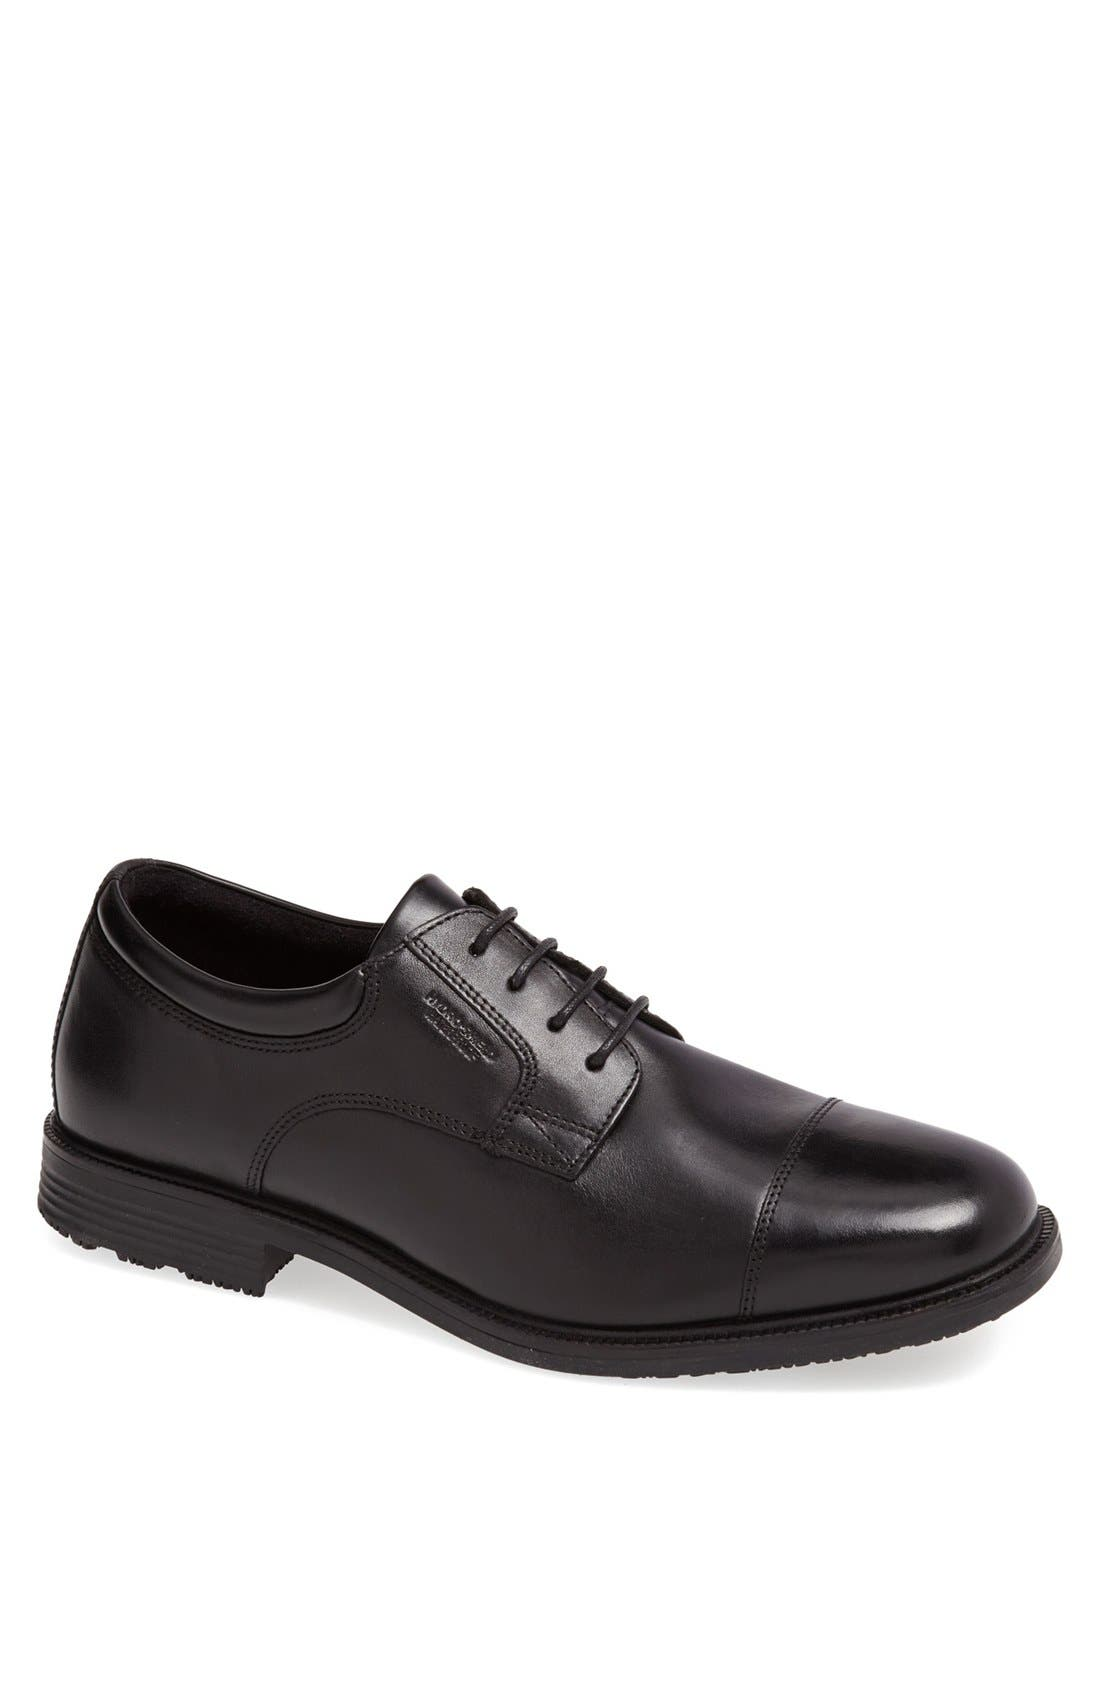 'Essential Details' Waterproof Cap Toe Derby,                             Main thumbnail 1, color,                             BLACK